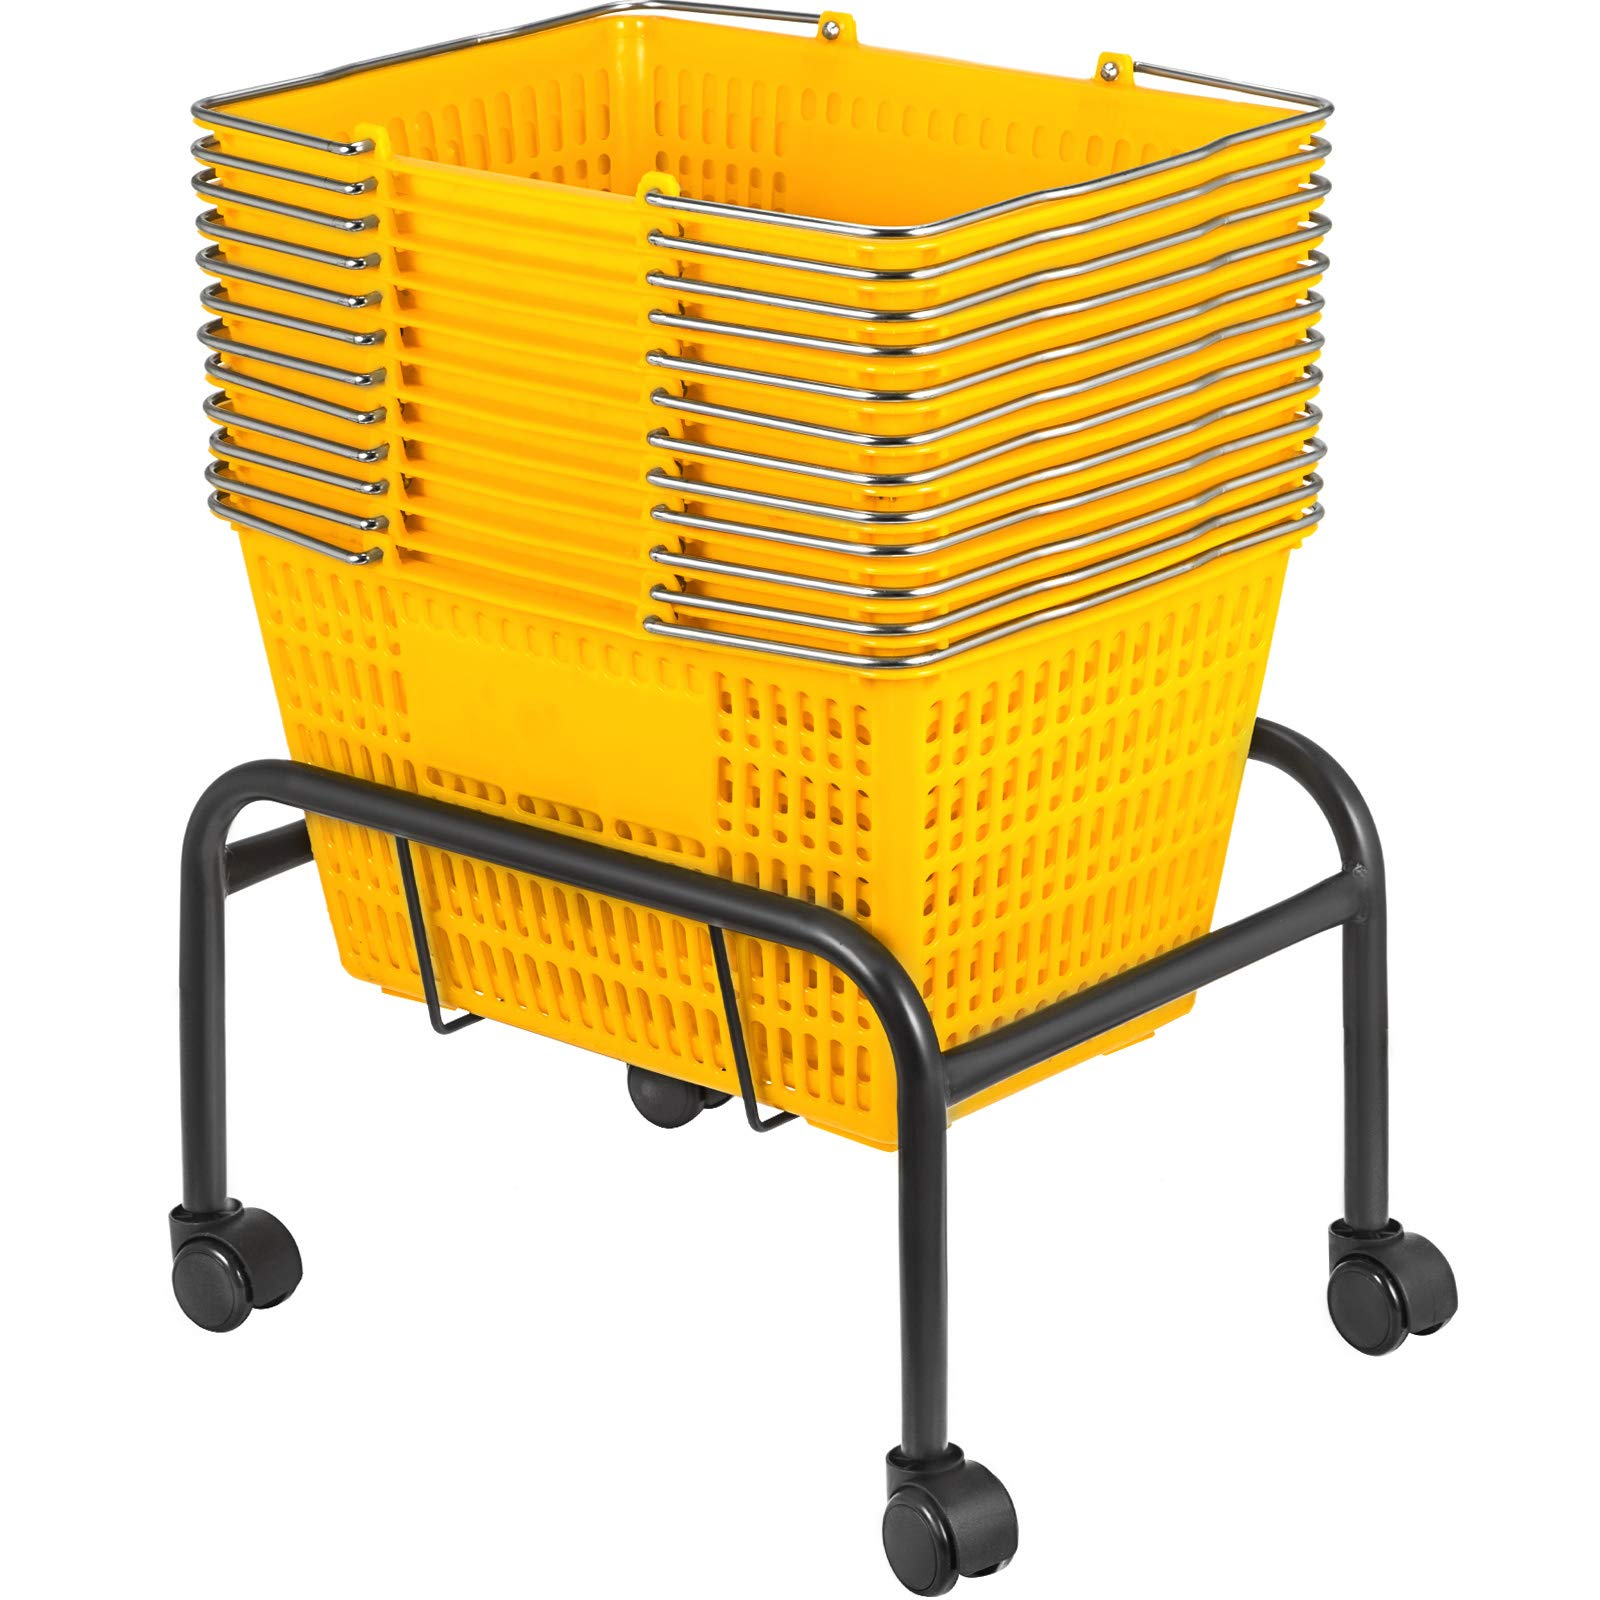 Mophorn Shopping Basket 12PCS Plastic Basket Yellow Large Basket with Handle Portable and Durable Stand with Rollers and Sign Shopping Baskets for Retail Store (Yellow, 18 x 12 x 10 inch)